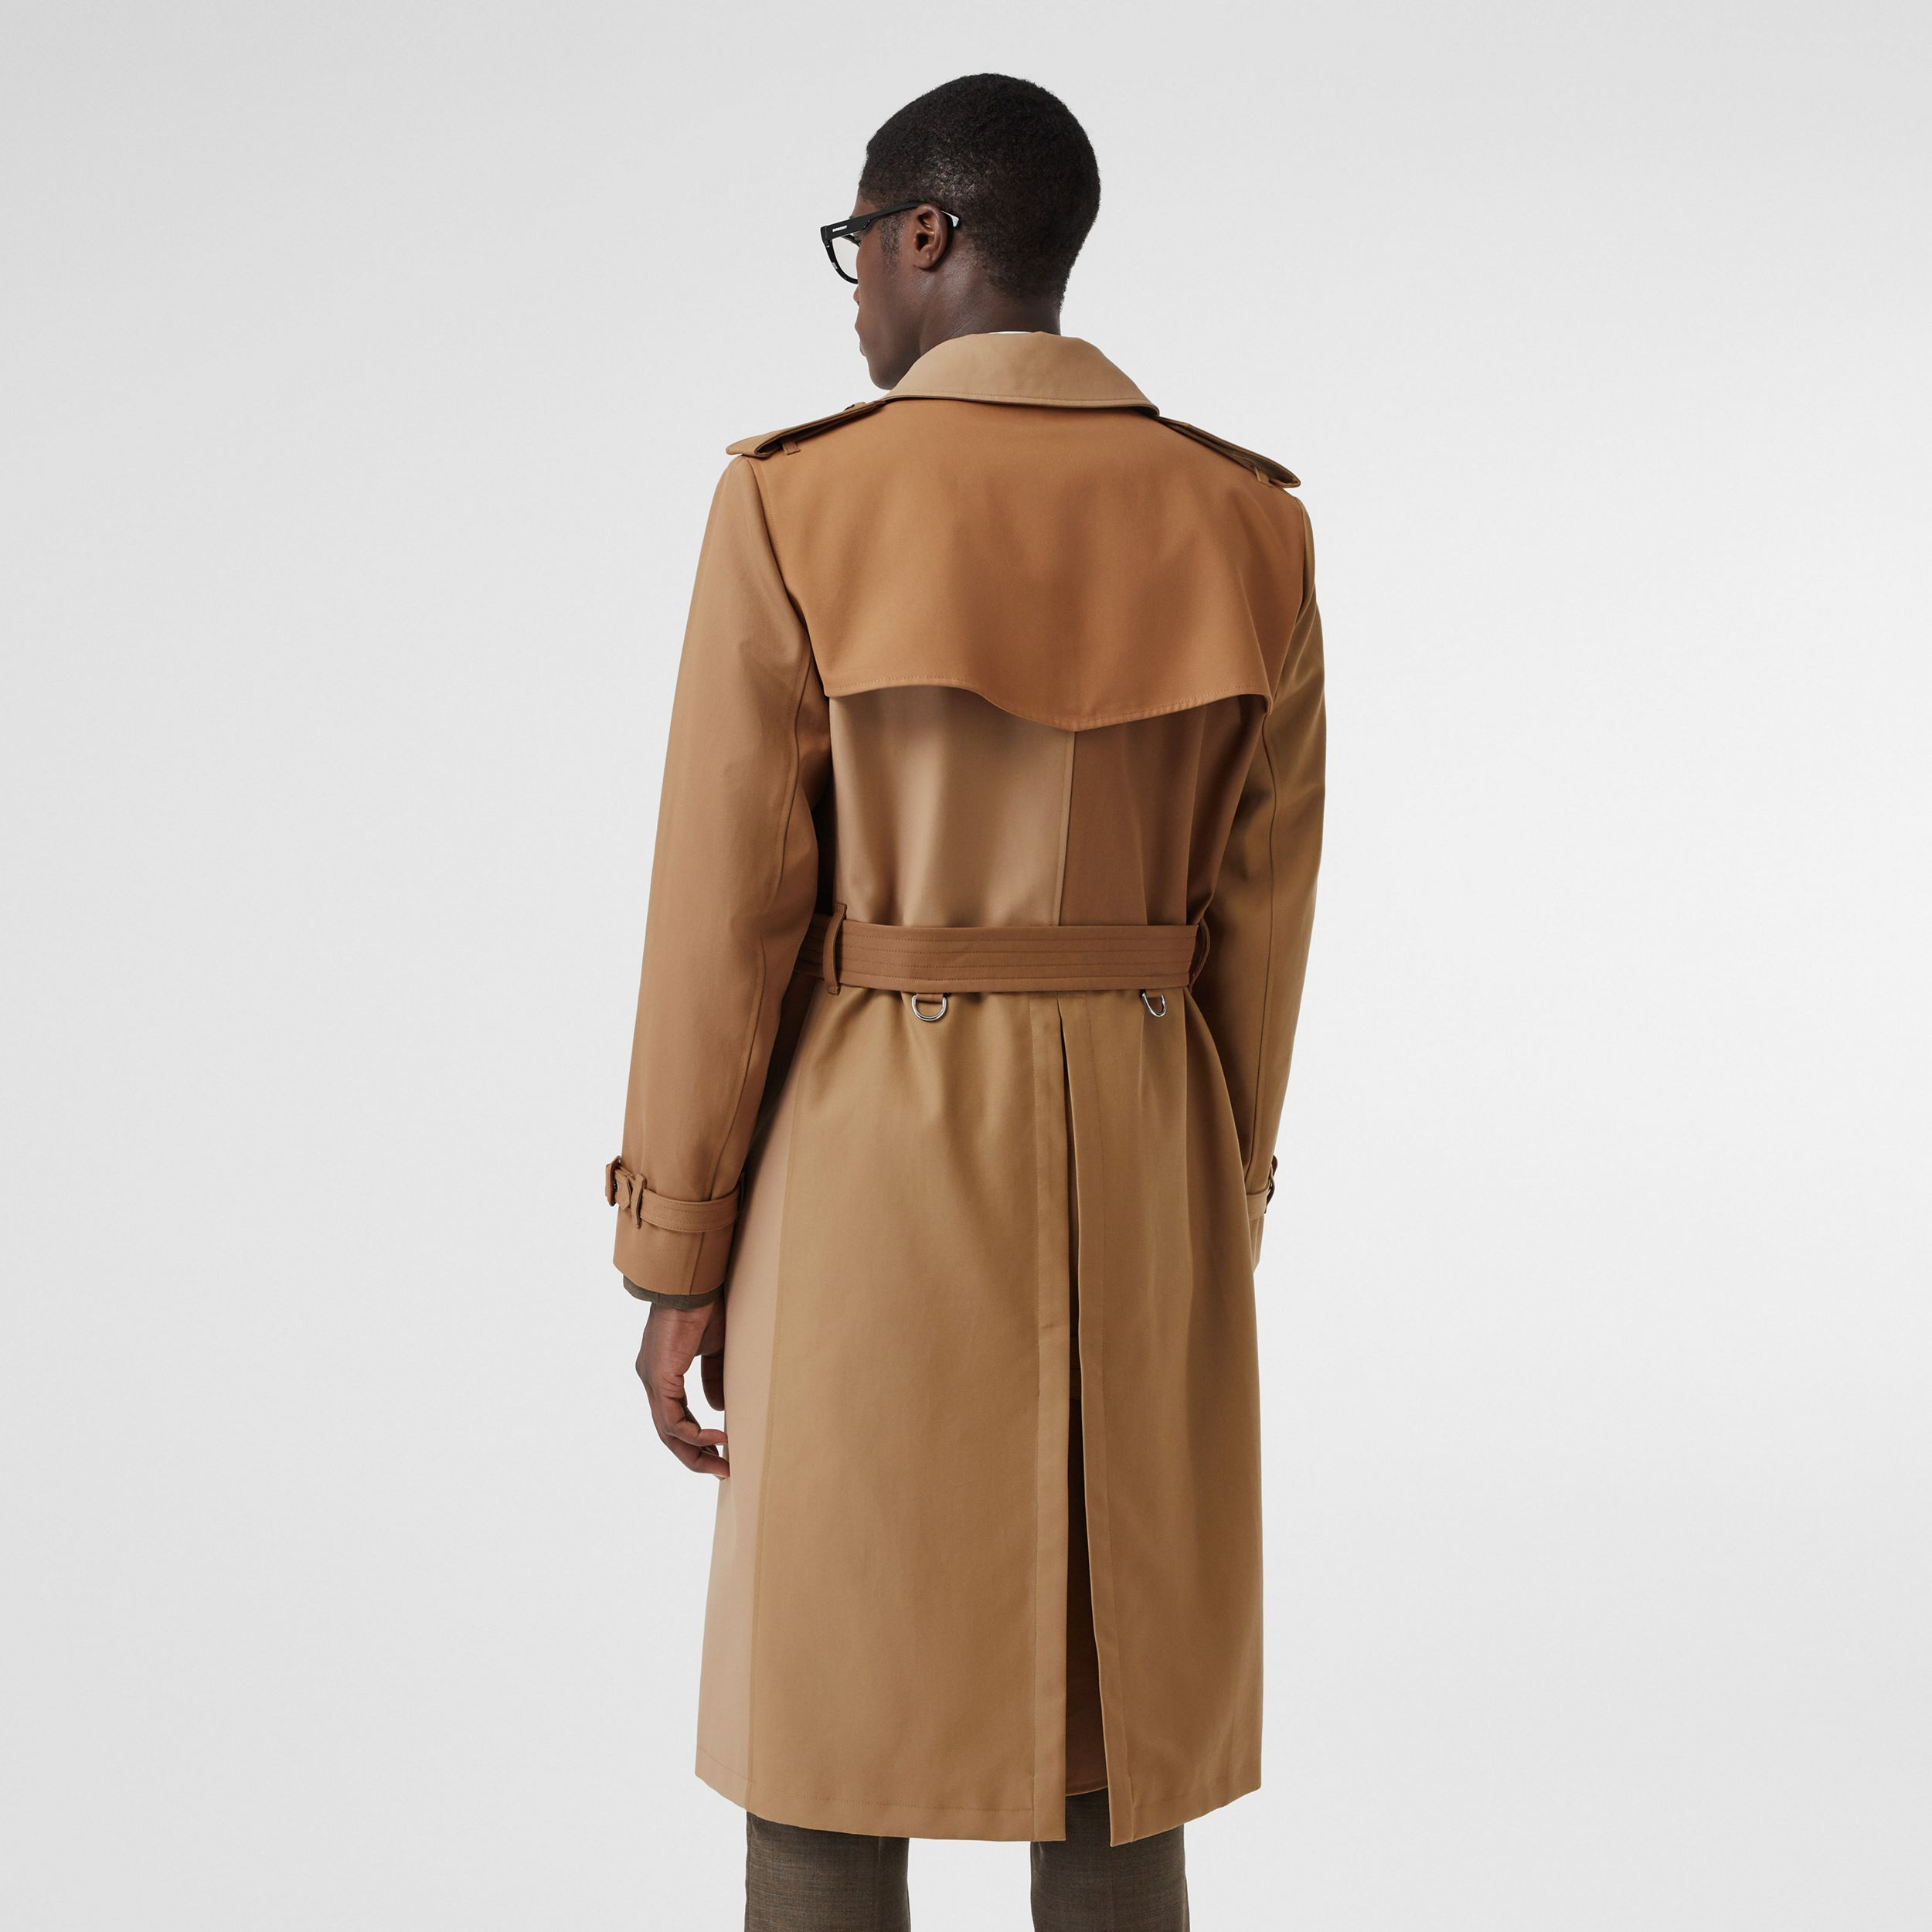 Panelled Cotton Trench Coat in Warm Camel - Men | Burberry - 3